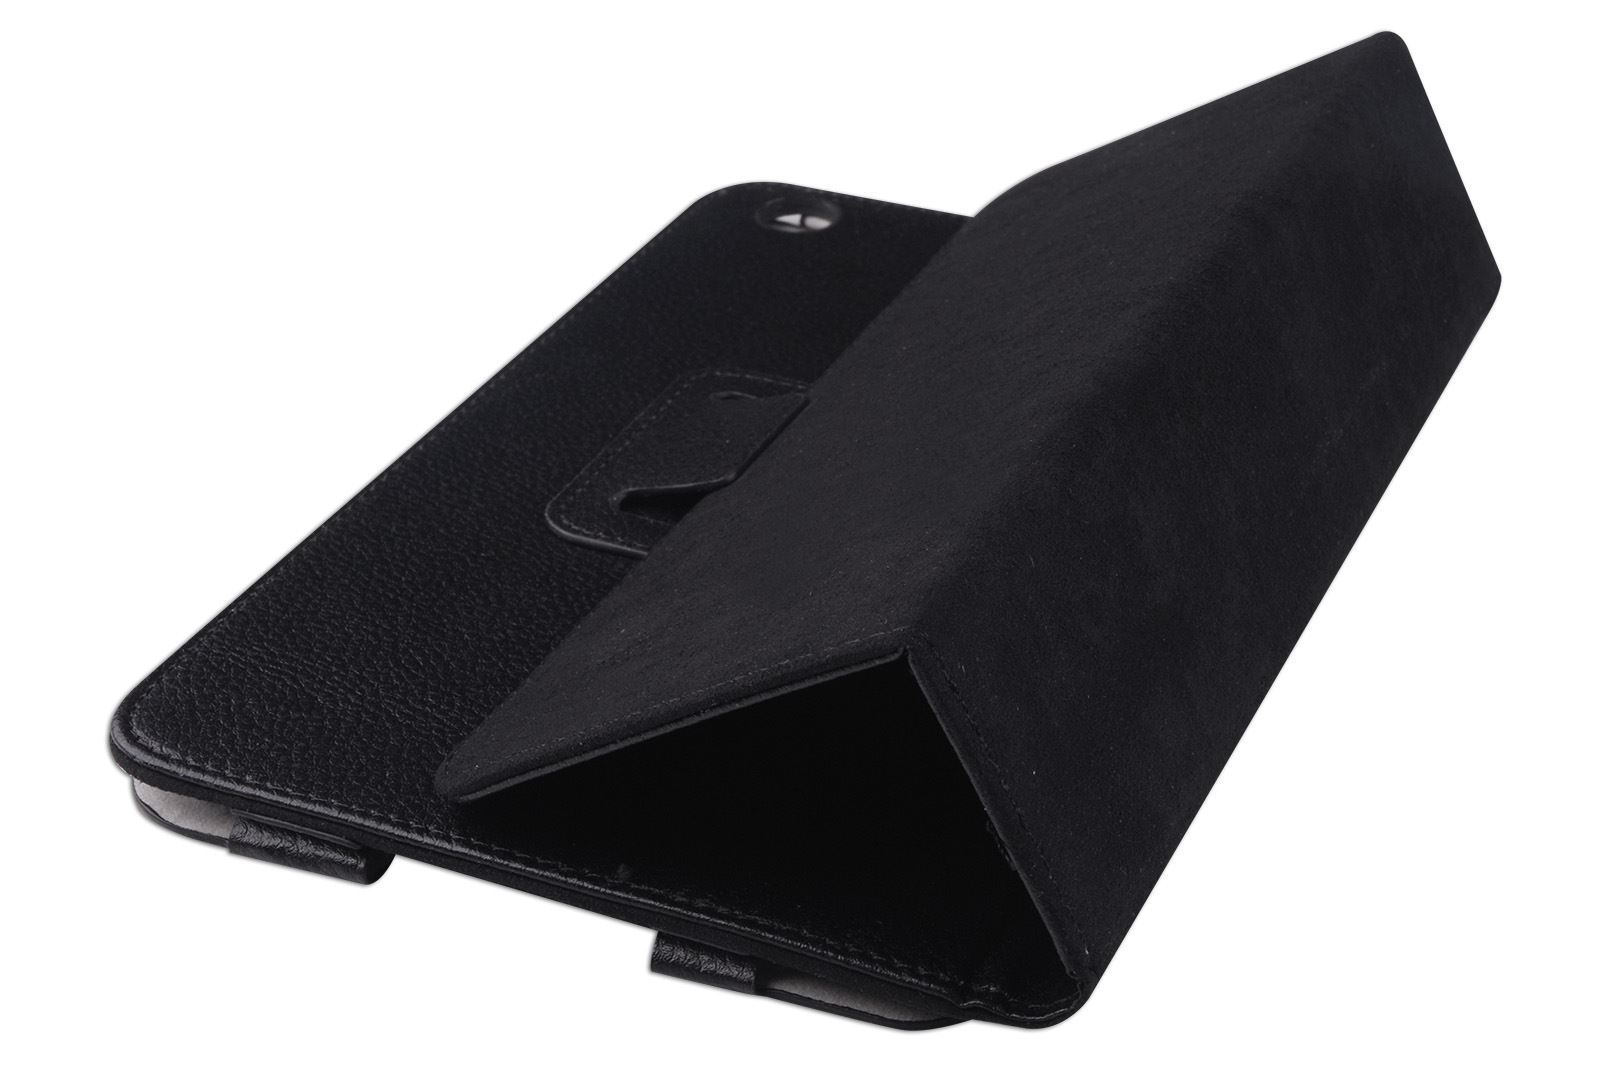 Hellfire-Trading-Magnetic-PU-Leather-Case-Cover-for-Lenovo-IdeaTab-A8-50-A5500 Indexbild 10